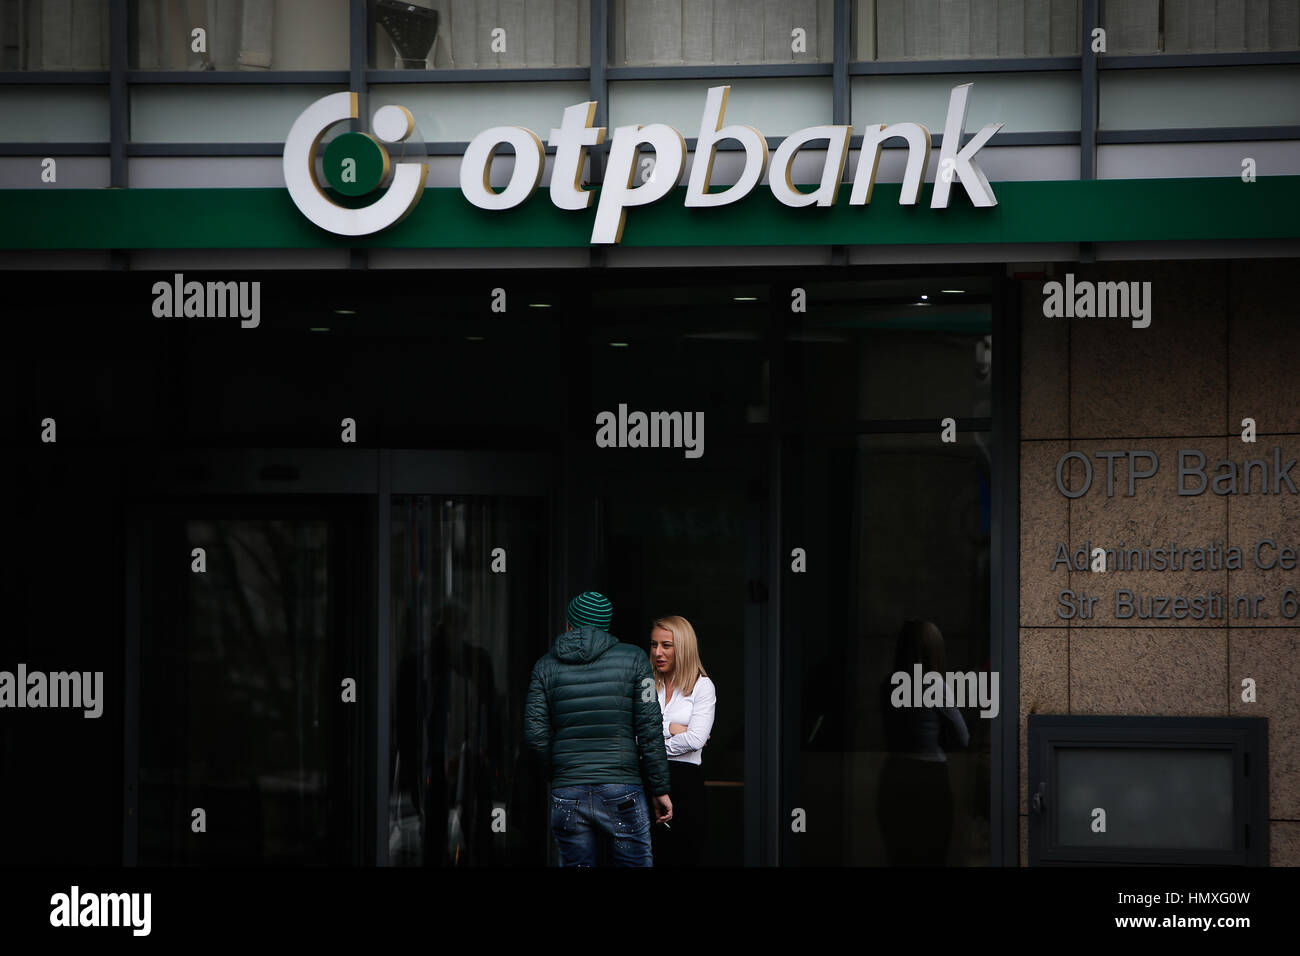 Bucharest, Romania. 06th Feb, 2017. A branch of the OTP bank is seen on 6 February, 2017. Credit: Willem Arriens/Alamy - Stock Image